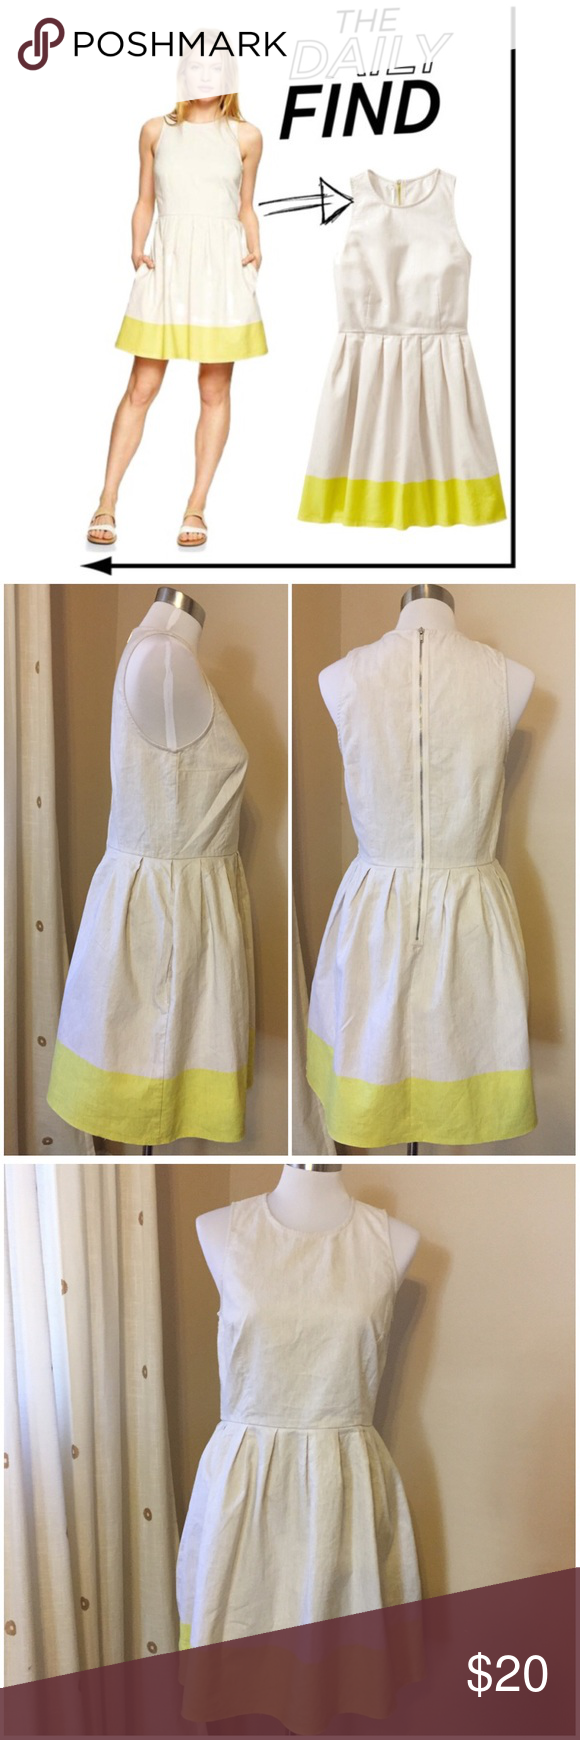 """NWT Gap Linen Fit & Flare Yellow Stripe Dress Sz 8 Gap Linen Fit & Flare Yellow Stripe Dress 8 - size 8 - 100% linen - back exposed silver zipper - 18"""" bust  - 15"""" waist - 35"""" length - heathered oatmeal colored linen, with bright yellow stripe at hem of skirt - empire waist is 15"""" from shoulder  - new with tags GAP Dresses"""